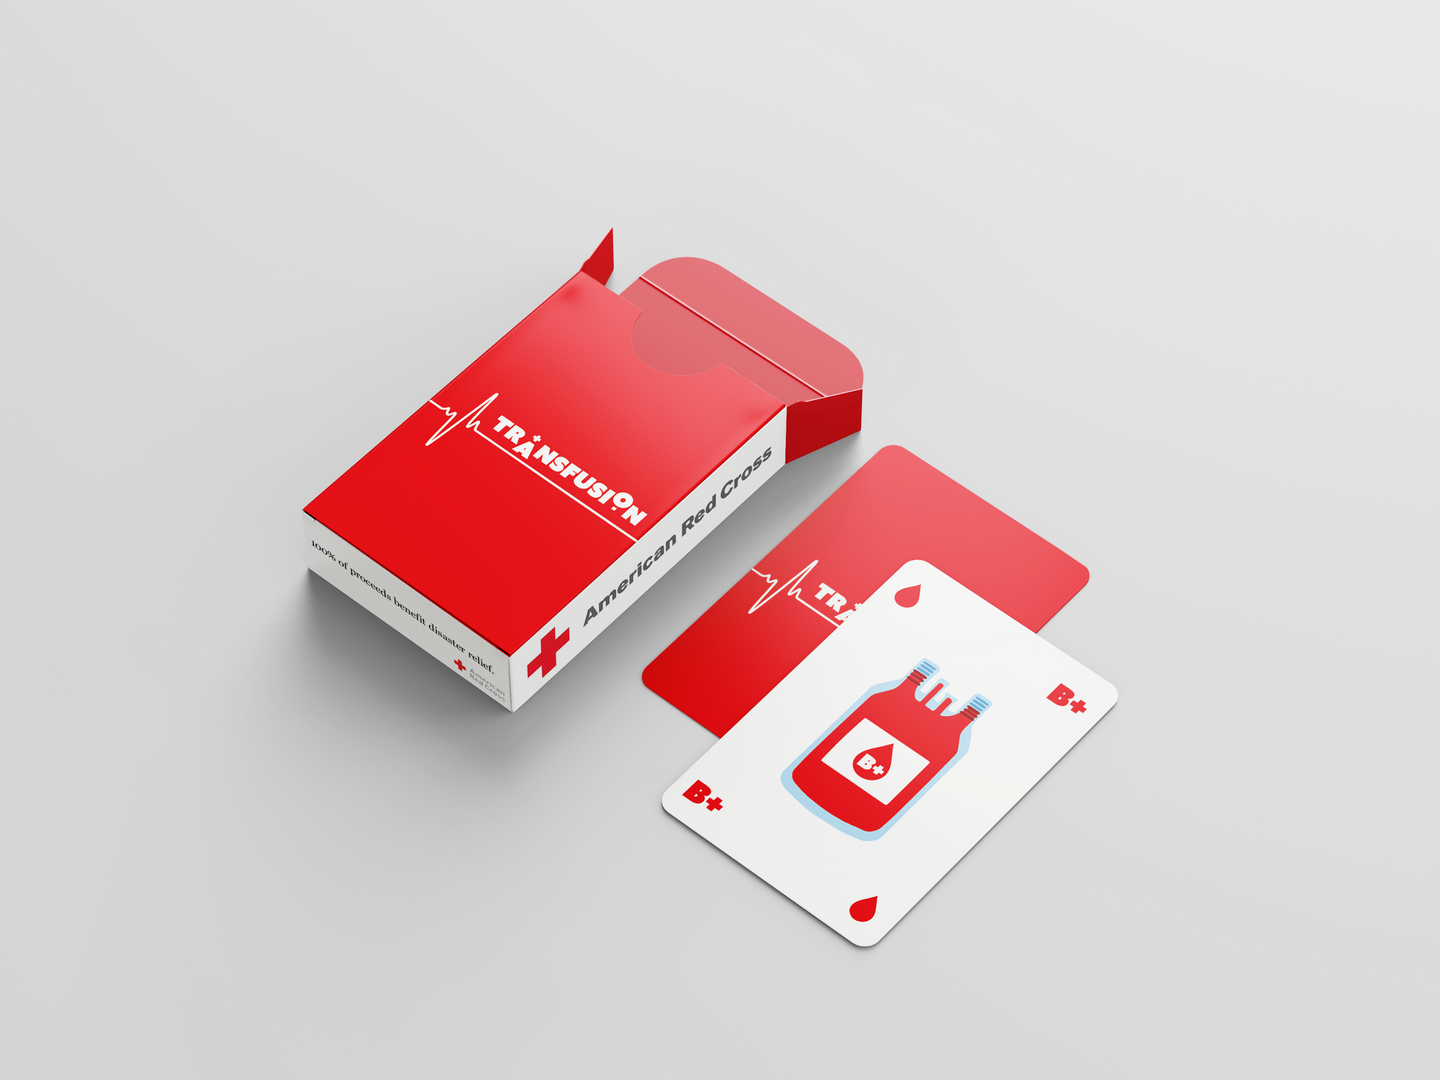 Transfusion - Blood Card Box